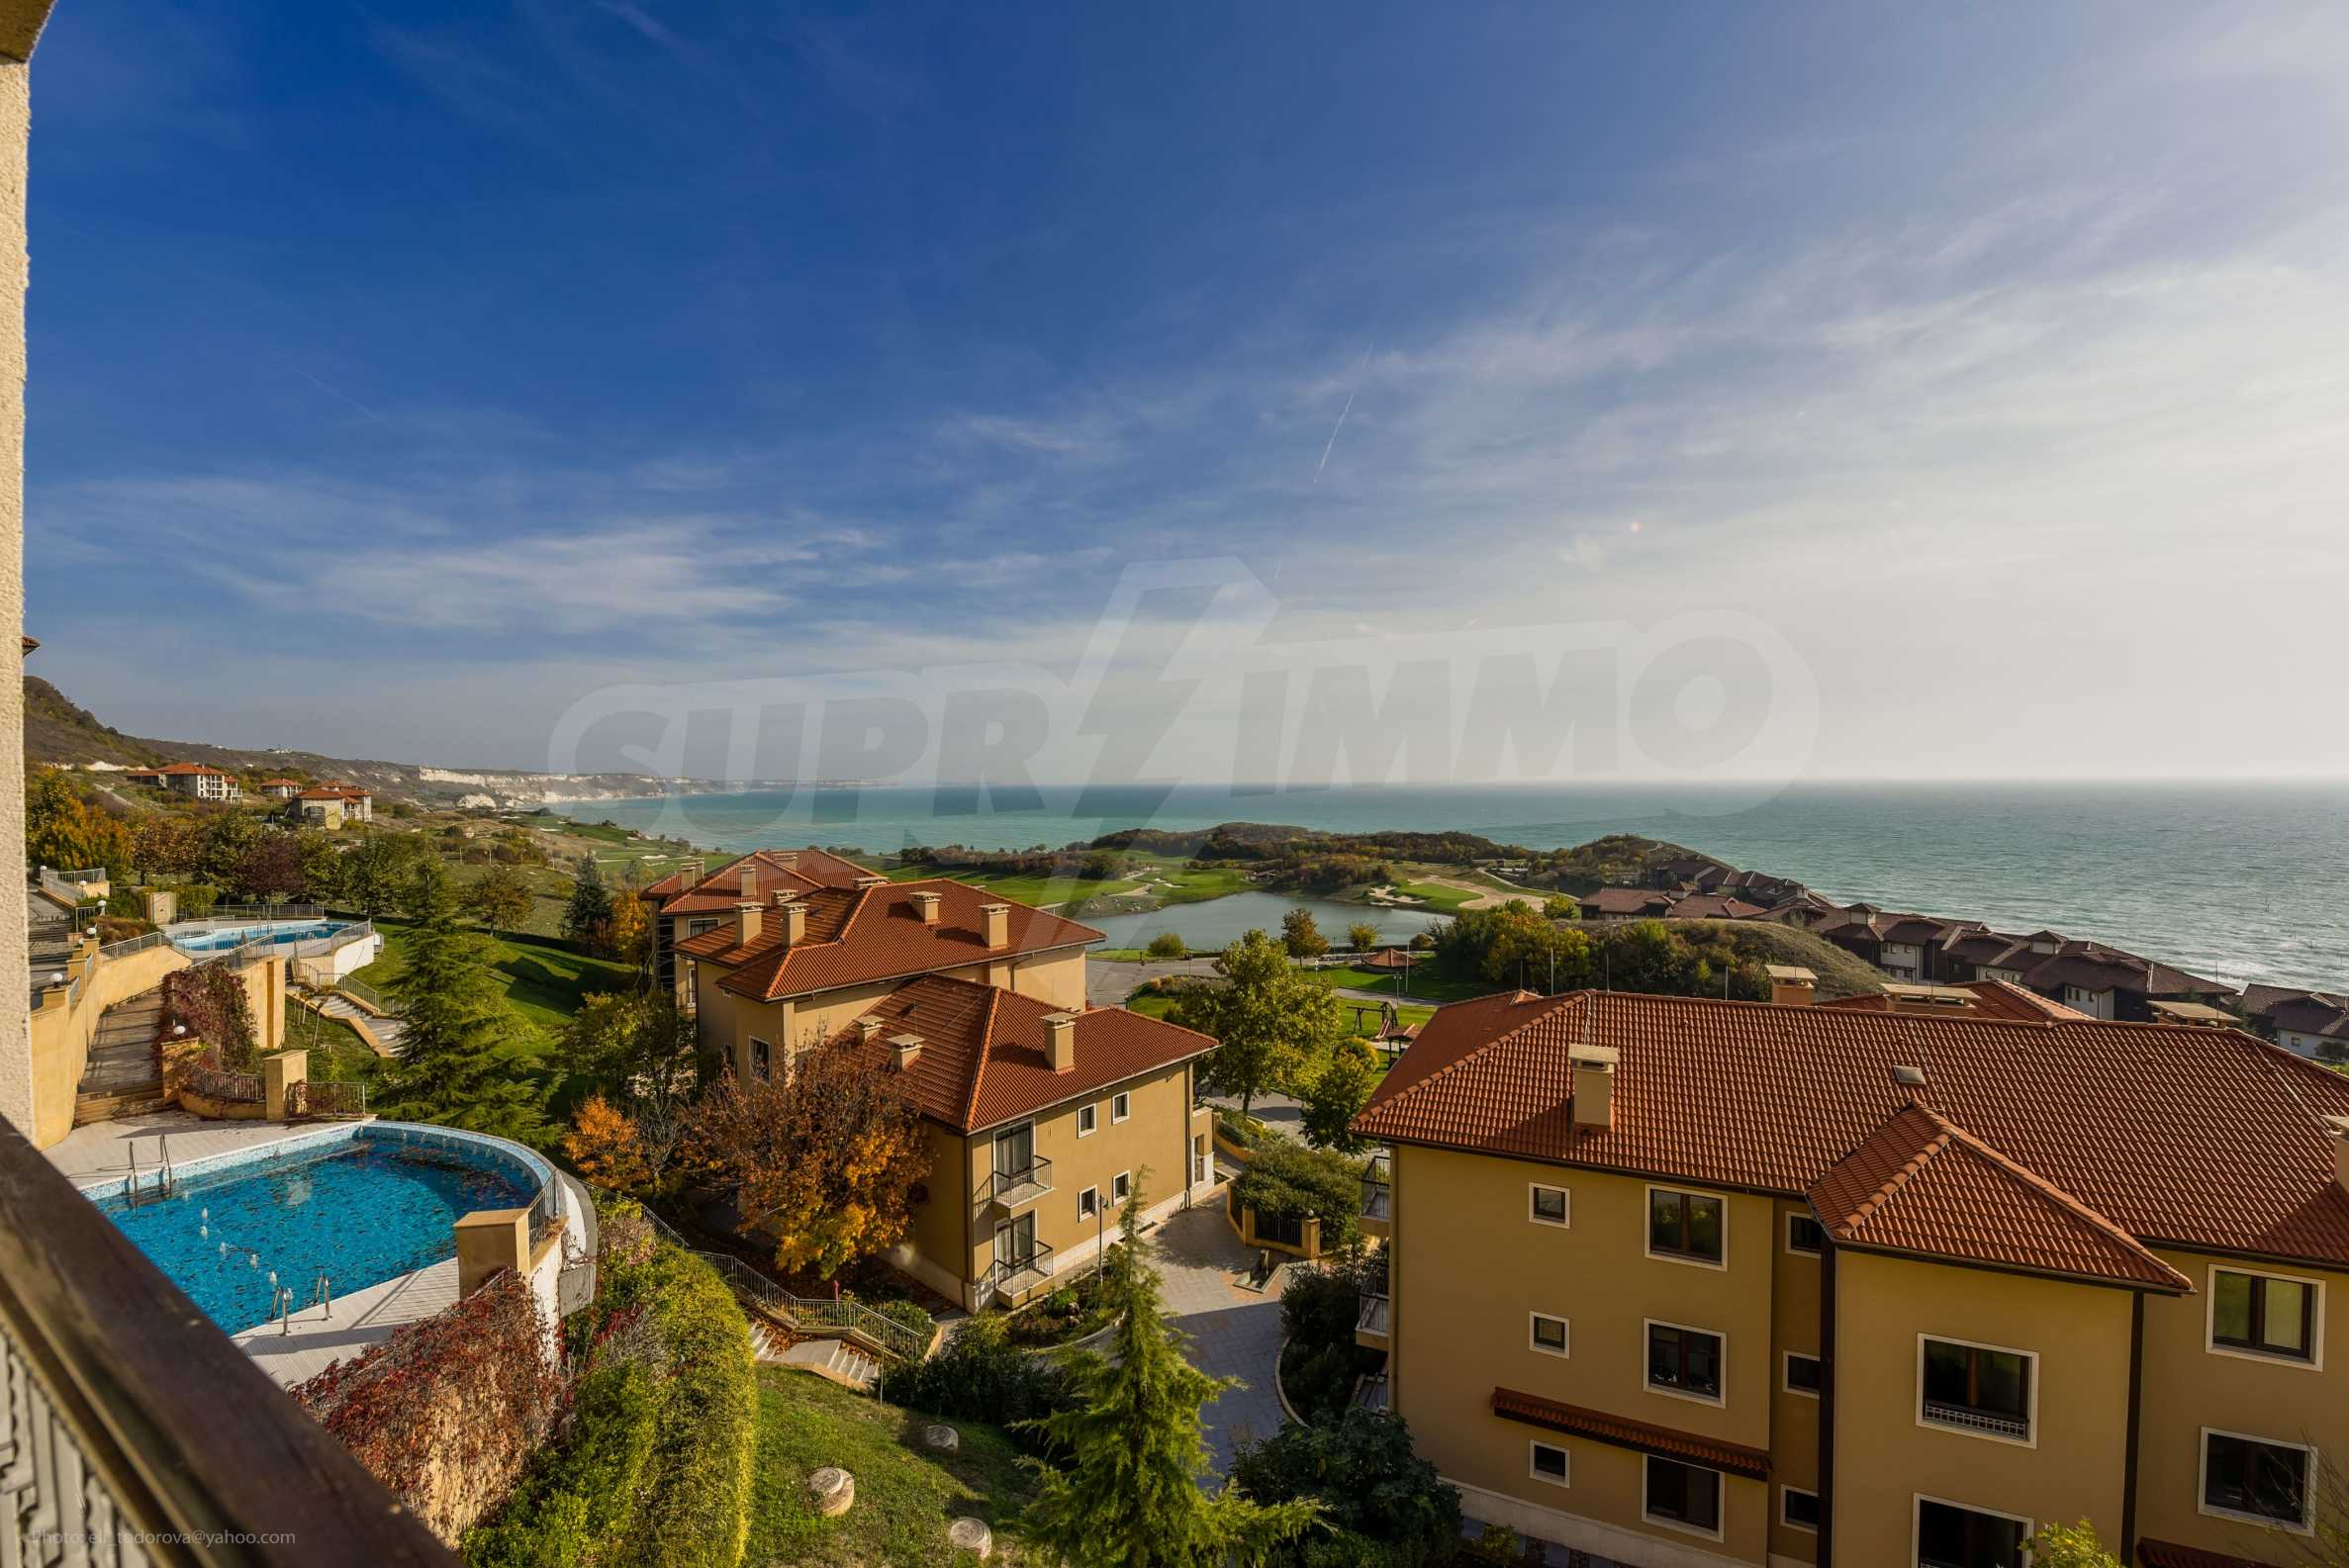 Thracian Cliffs Golf & Beach Resort - a world class golf resort 2